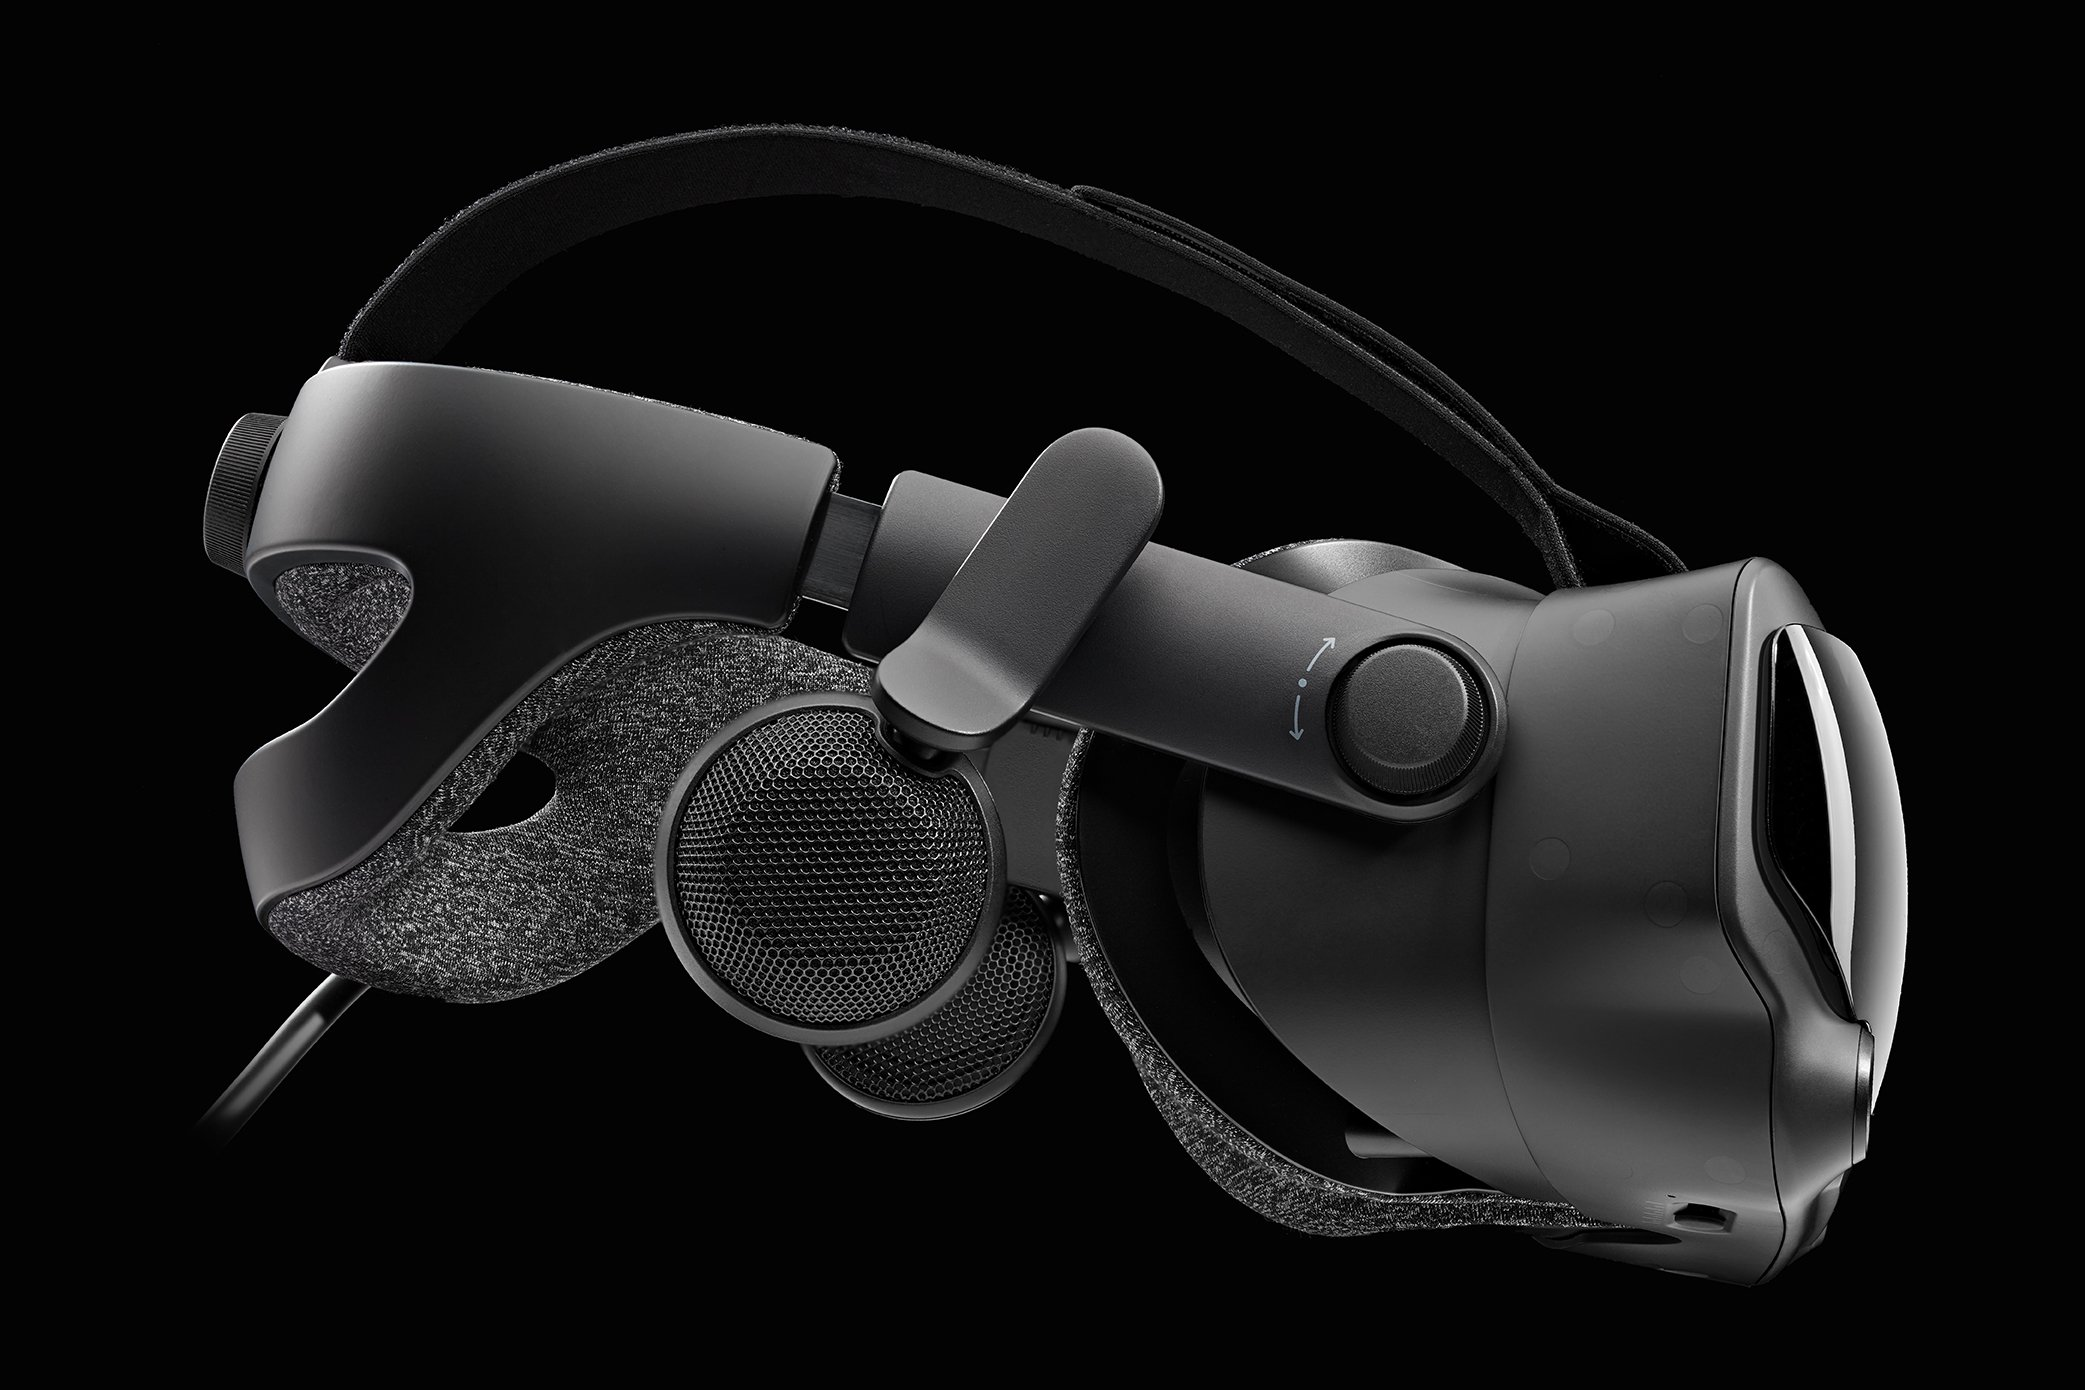 The Valve Index aims to be one of the most comfortable VR HMDs on the market.